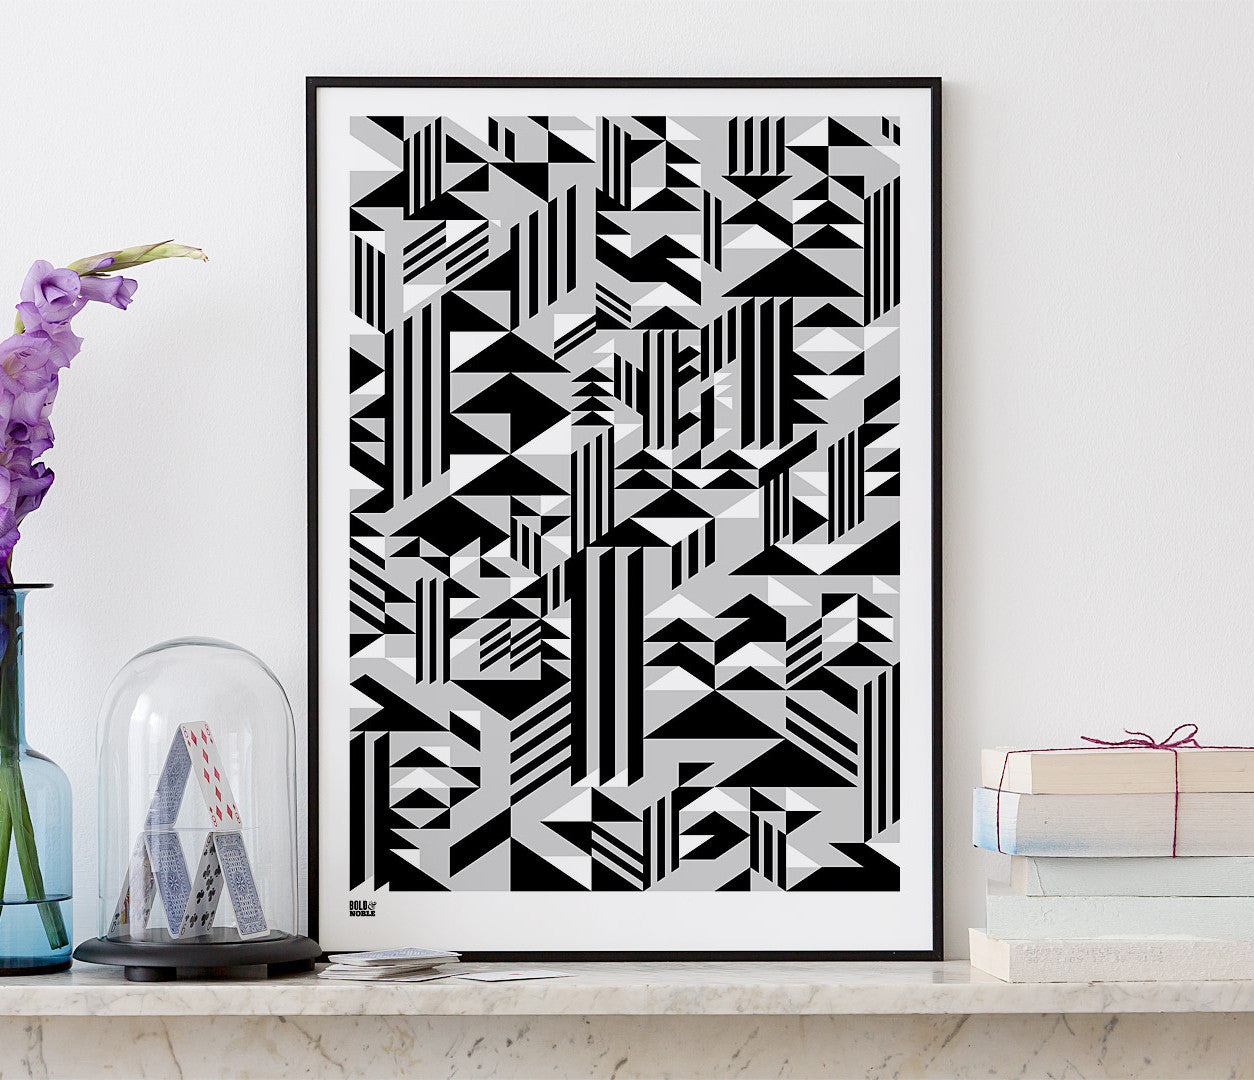 Wall Art ideas: Economical Screen Prints, Higher Geometric Screen Print in black and grey